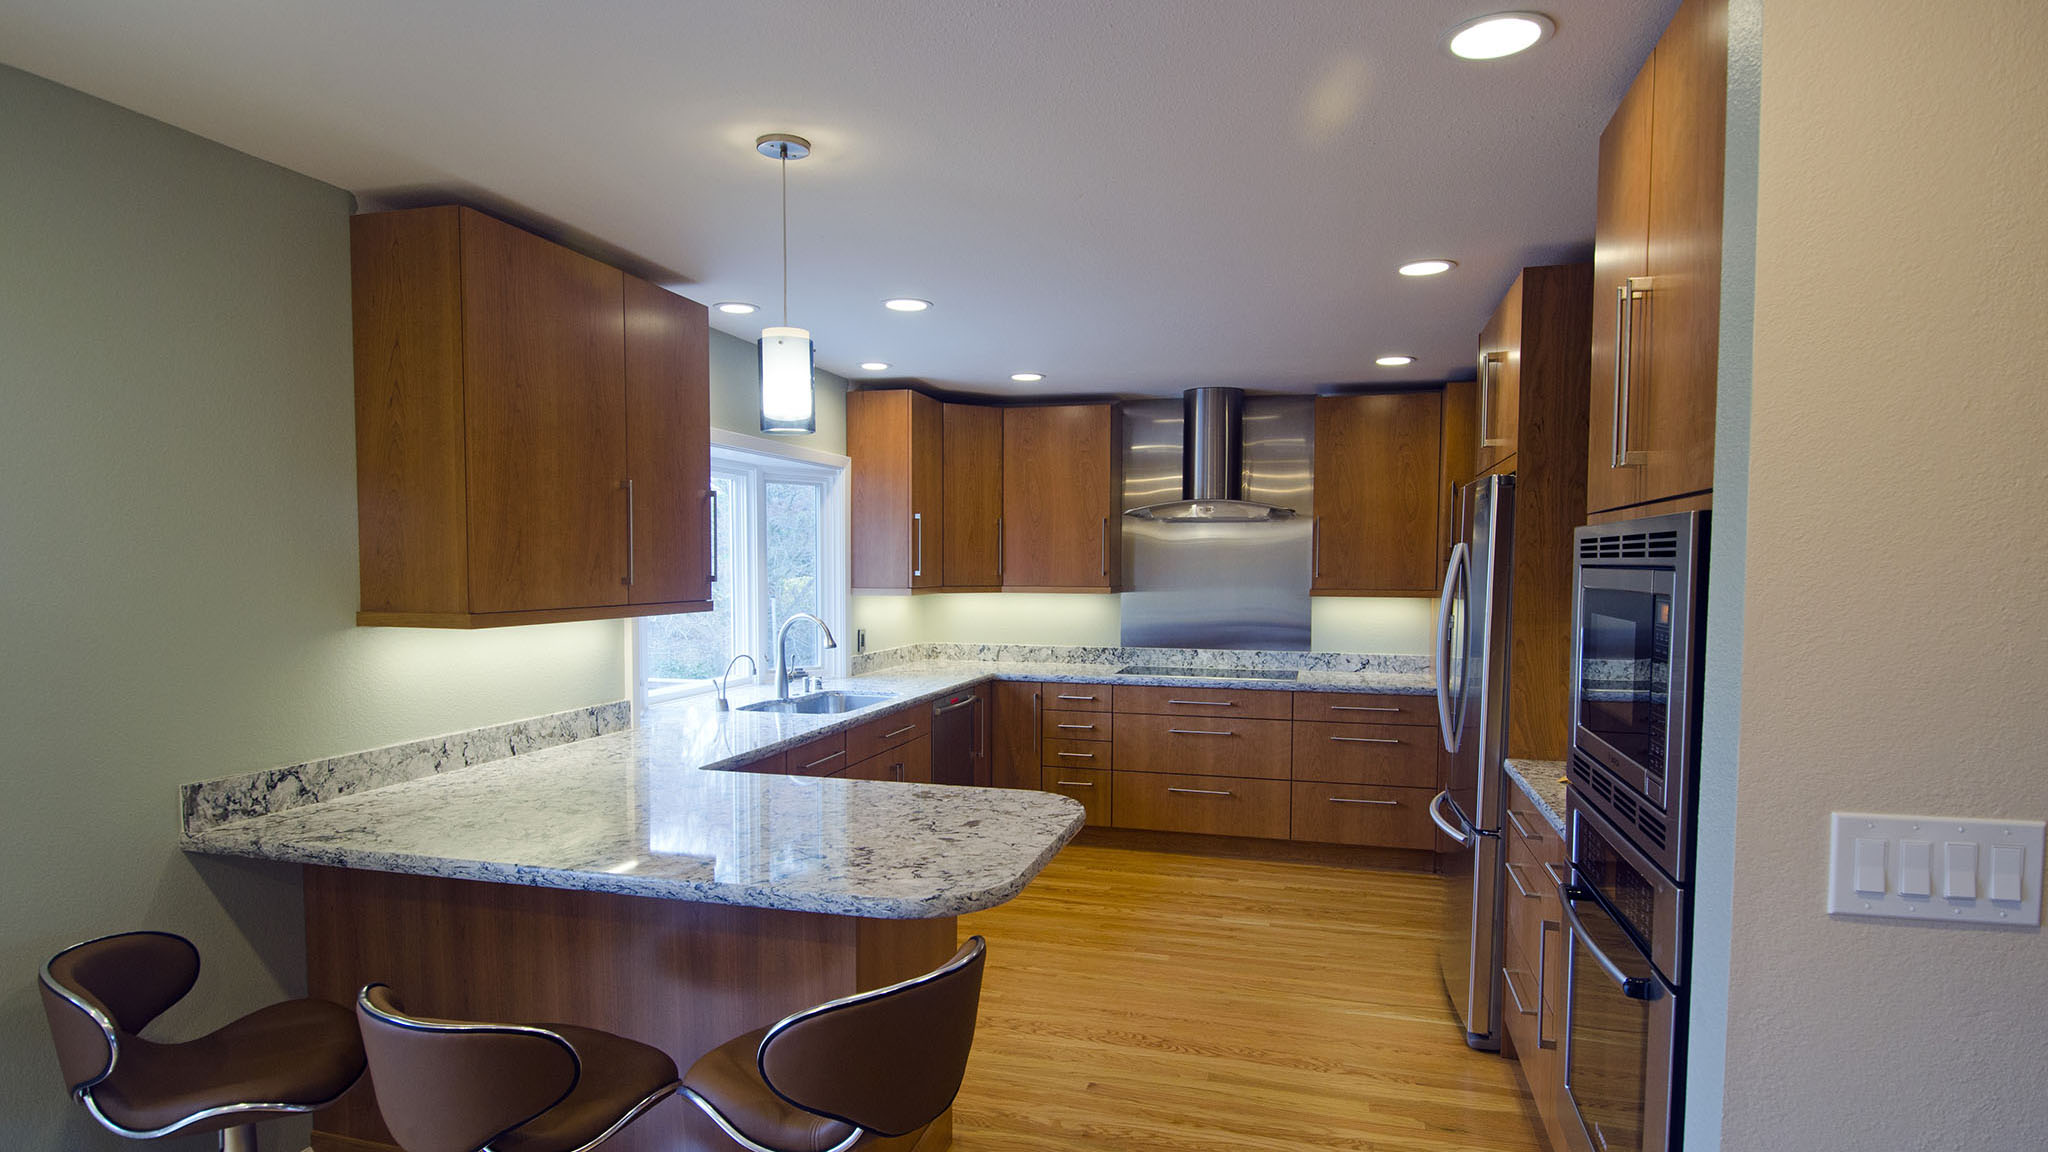 Recessed Lighting In Kitchen How To Improve Your Home With Led Lighting Tested